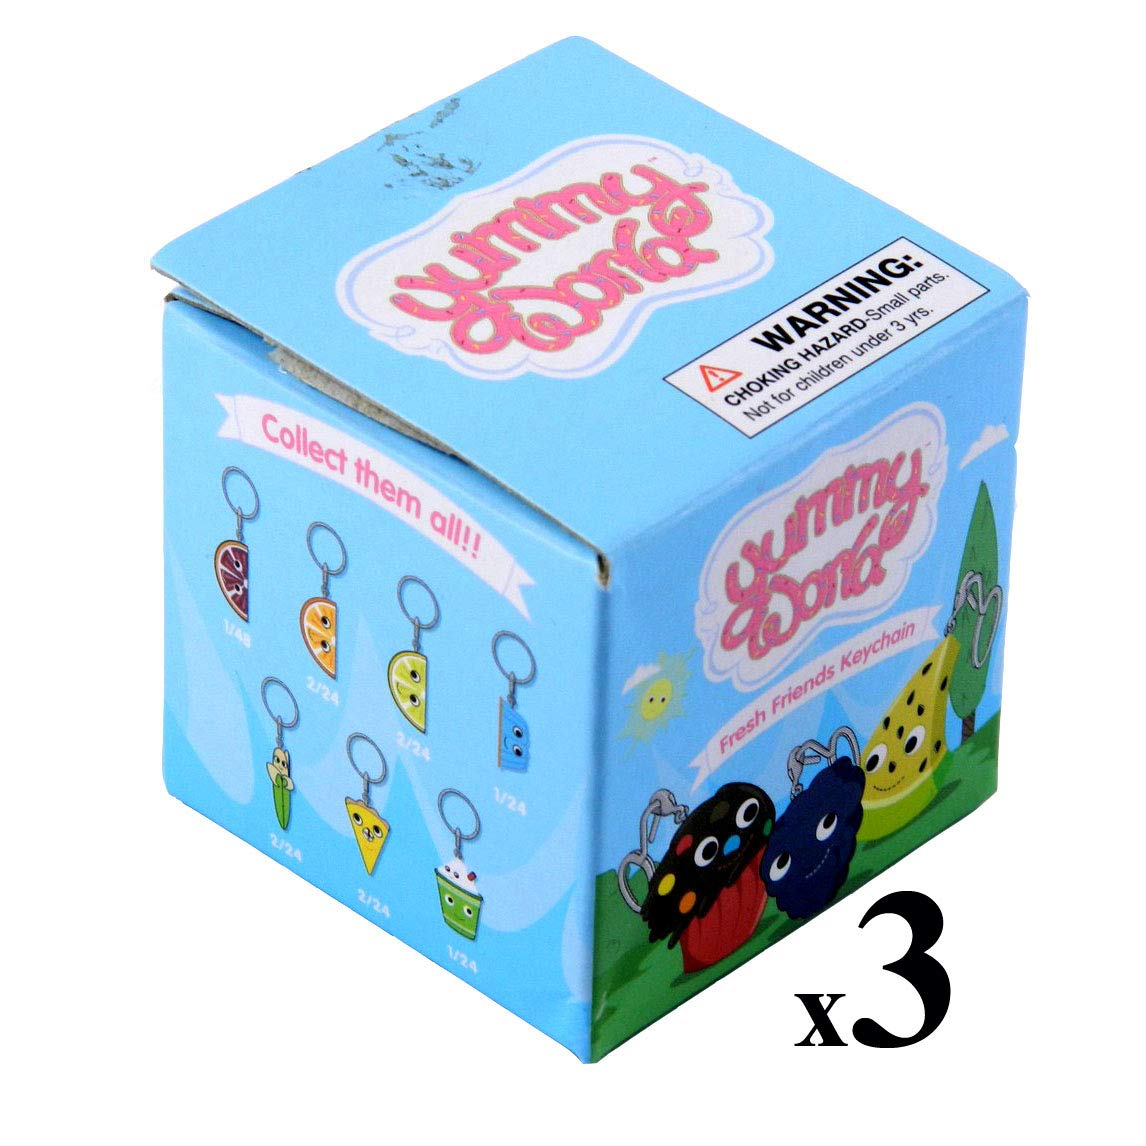 Kidrobot Lot of (3) Yummy World Fresh Friends Blind Box Vinyl Figure Keychains by Kidrobot